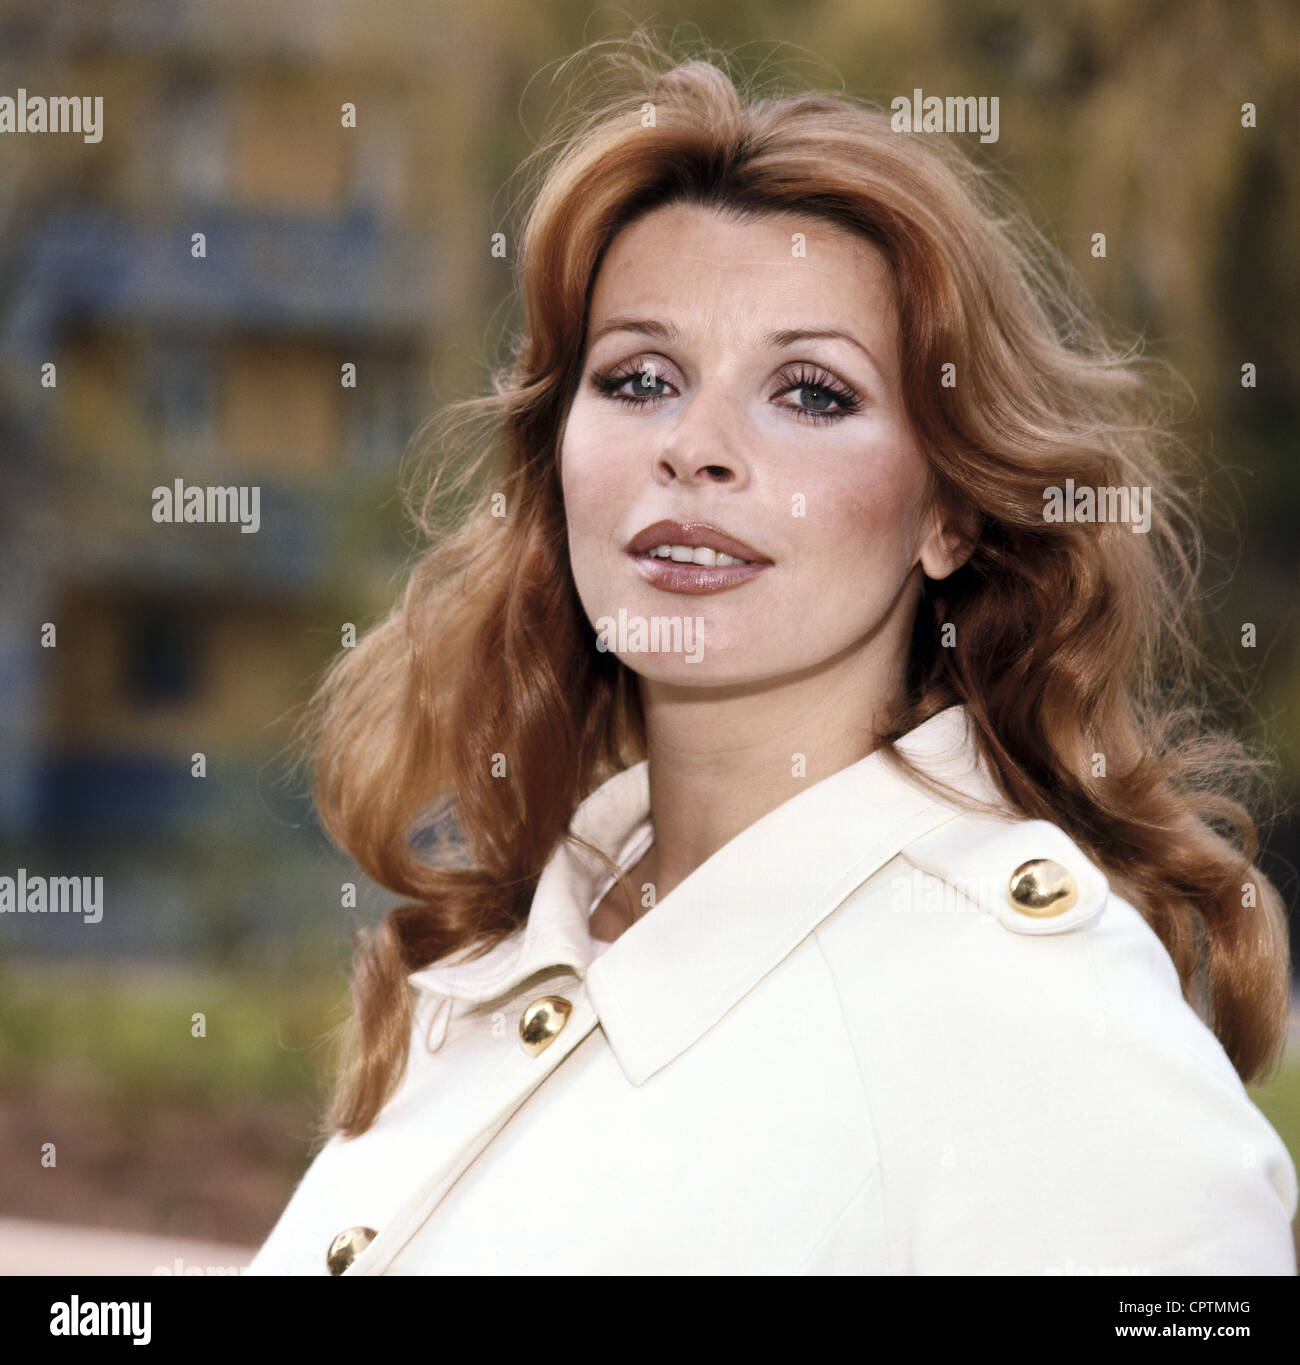 Berger, Senta, * 13.5.1941, Austrian actress, portrait, 1970s, , Stock Photo